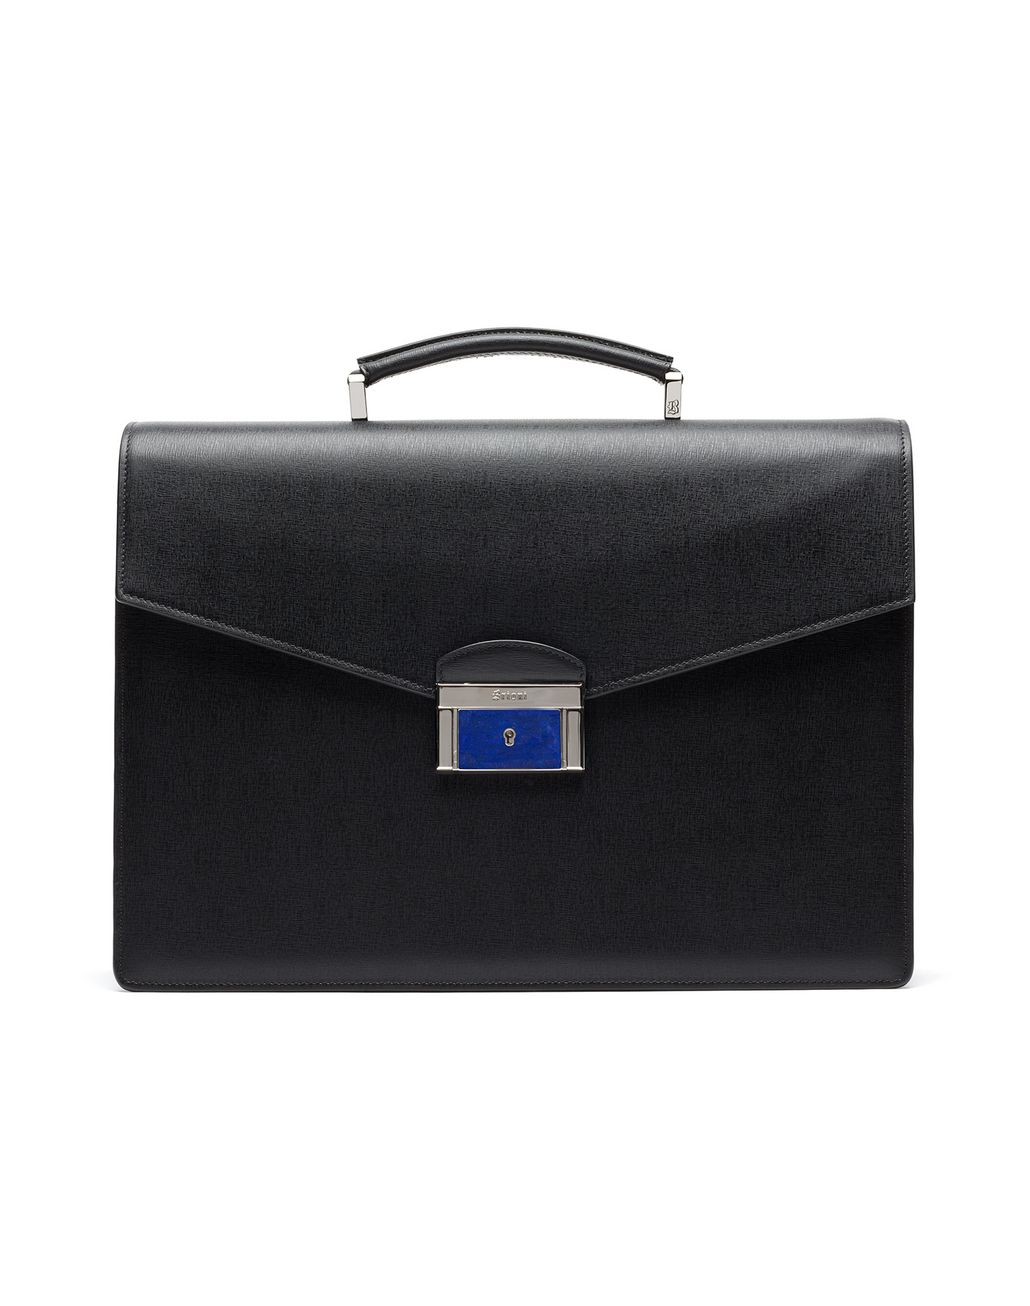 BRIONI Black Saffiano Briefcase with Lapis Lazuli Bag U f